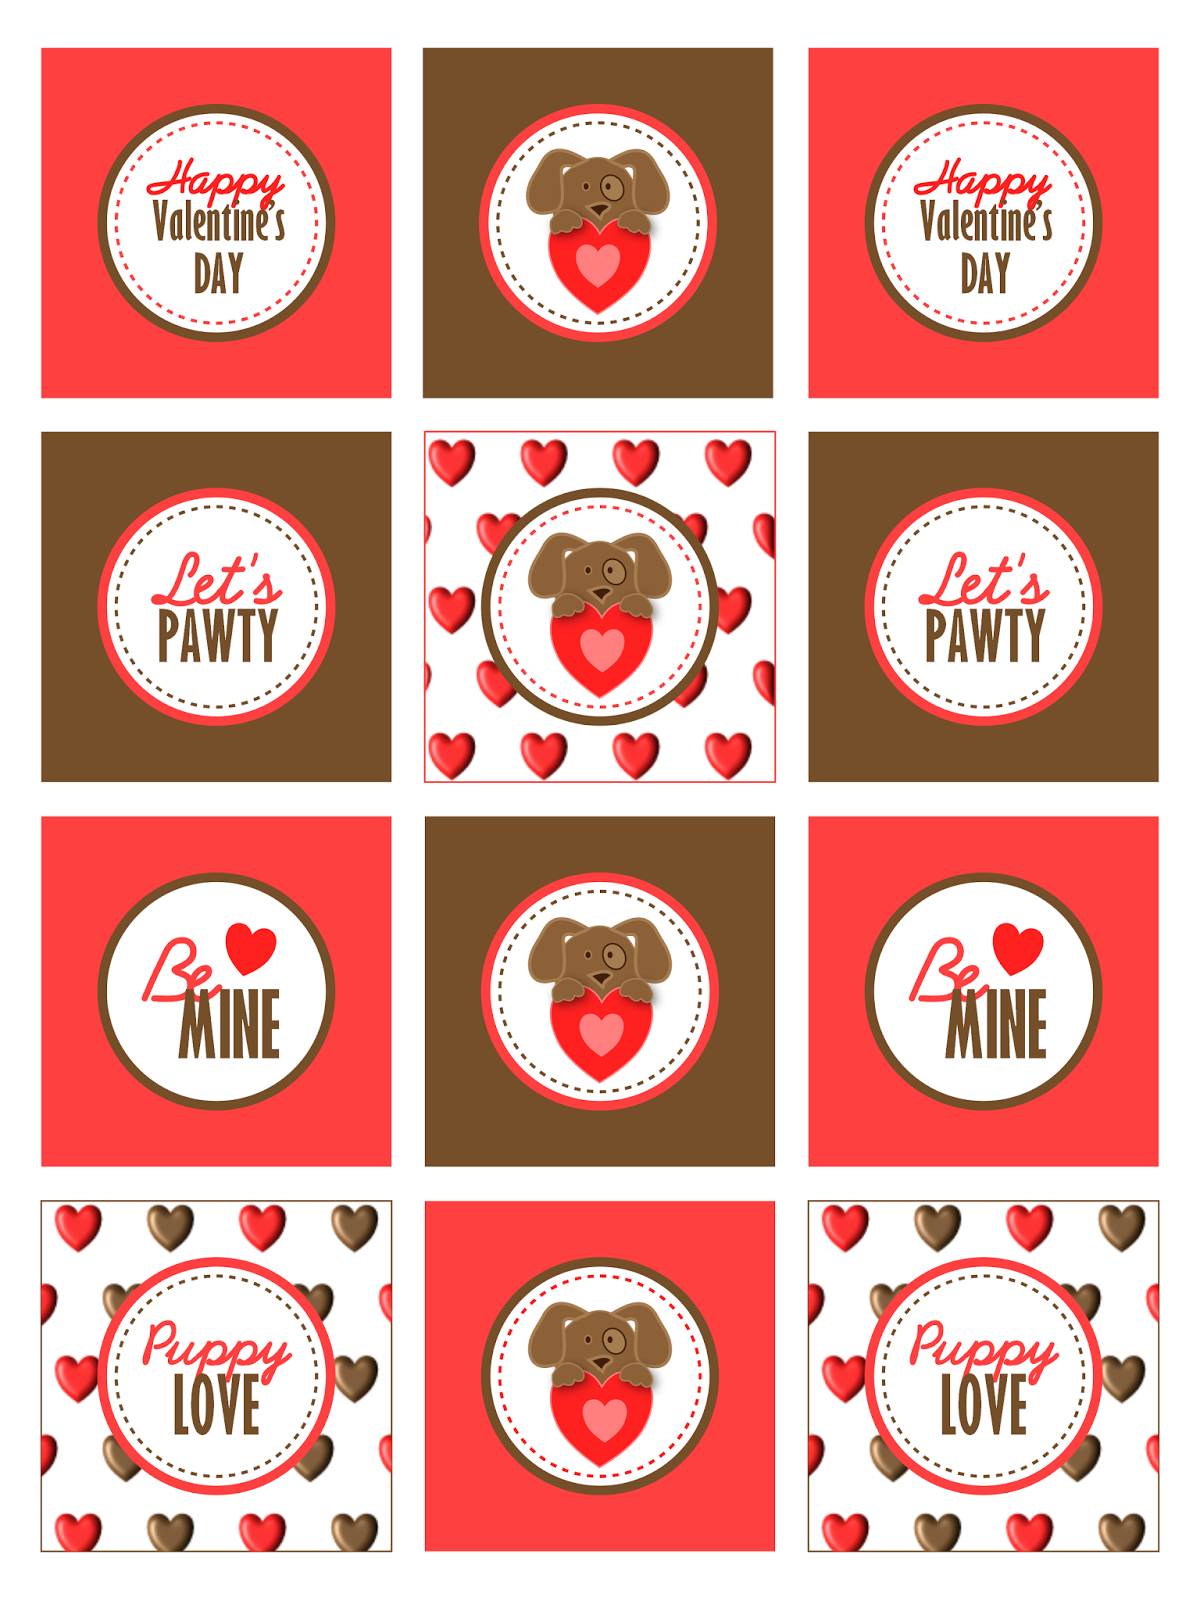 FREE Puppy Love Valentine's Party Printables